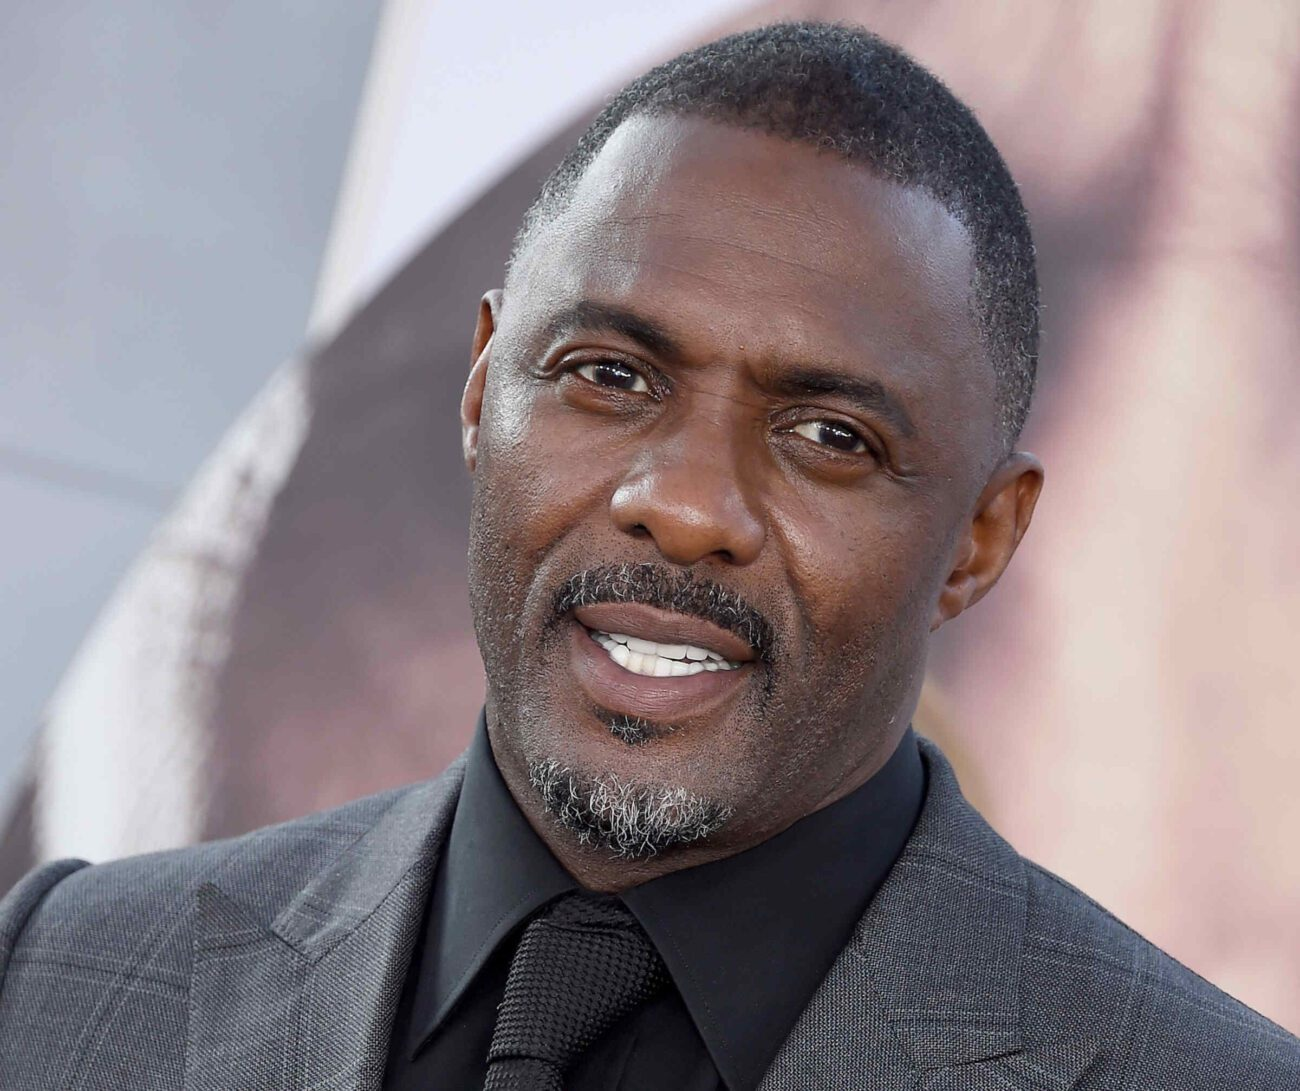 From 'The Wire' to the Marvel Cinematic Universe, Idris Elba's net worth continues to grow. Learn what's keeping this London-born actor in such high demand!